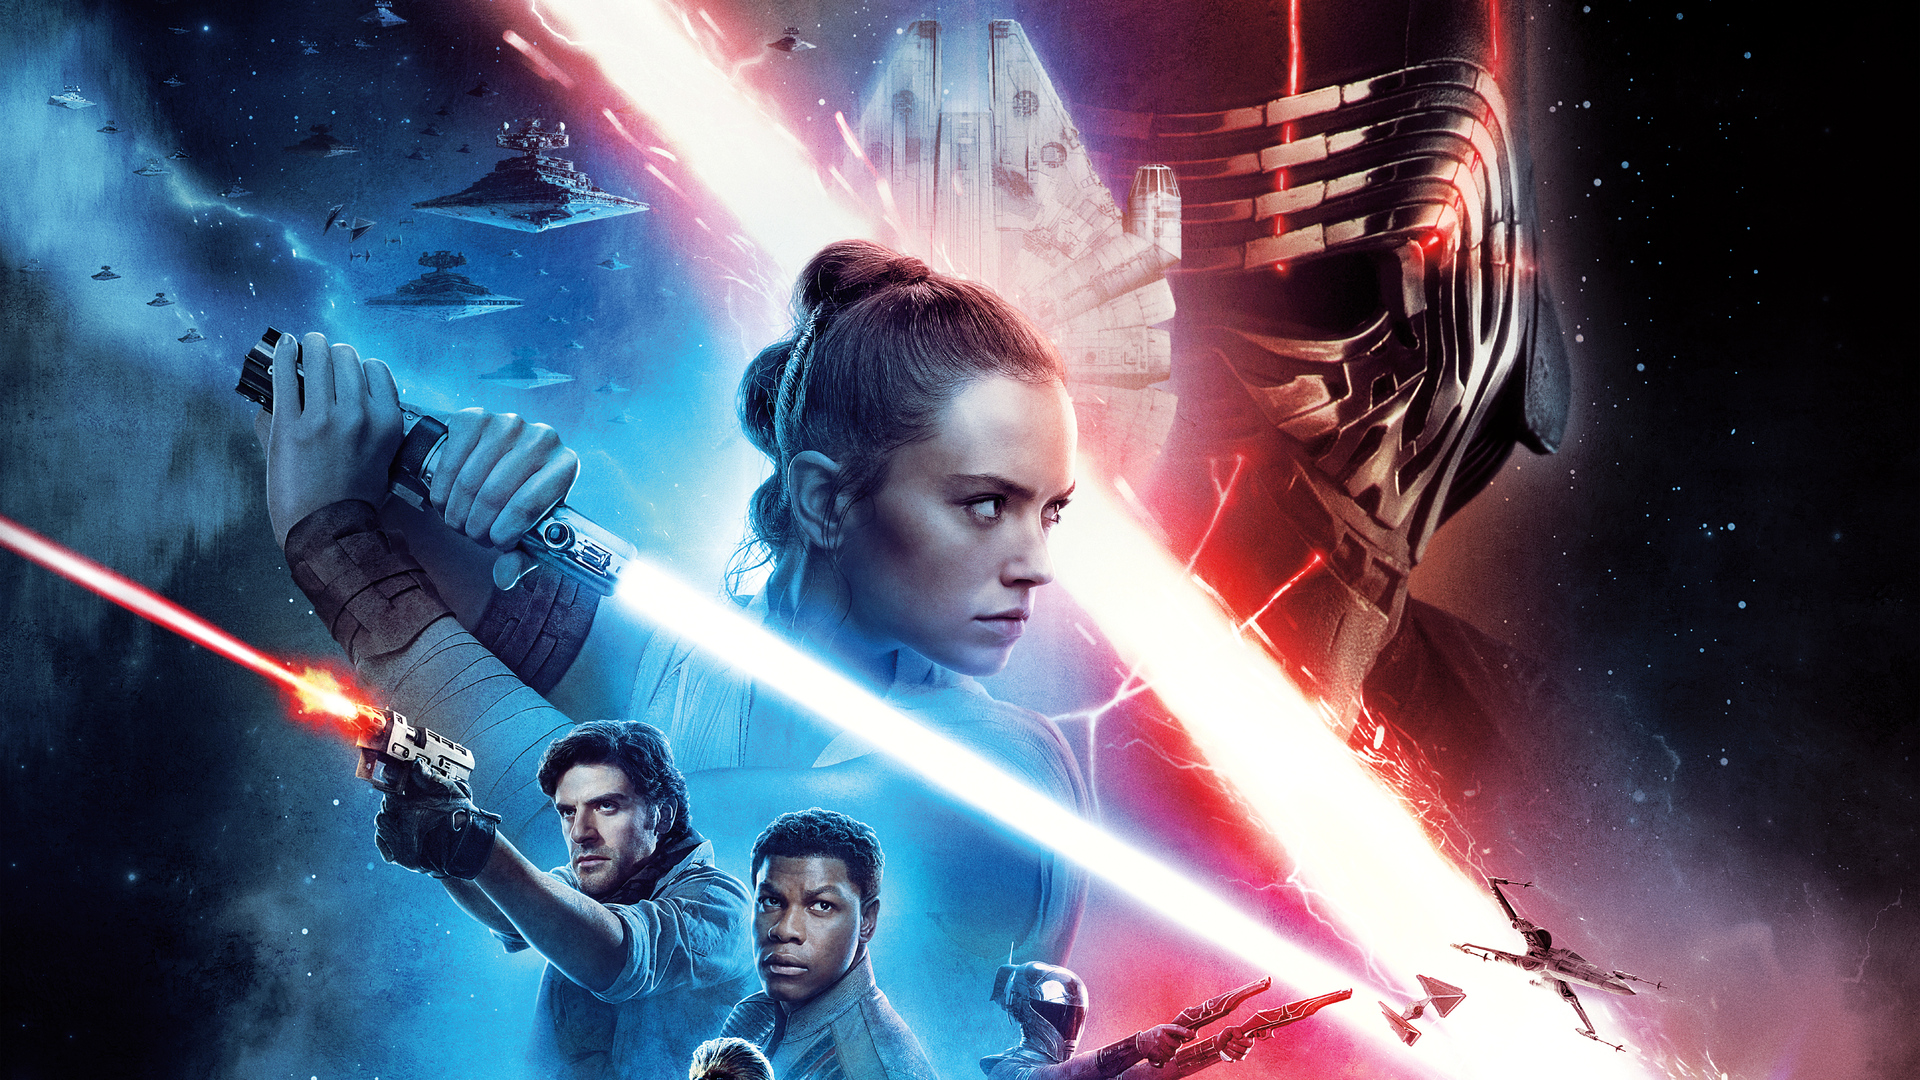 1920x1080 Star Wars The Rise Of Skywalker 8k Laptop Full Hd 1080p Hd 4k Wallpapers Images Backgrounds Photos And Pictures